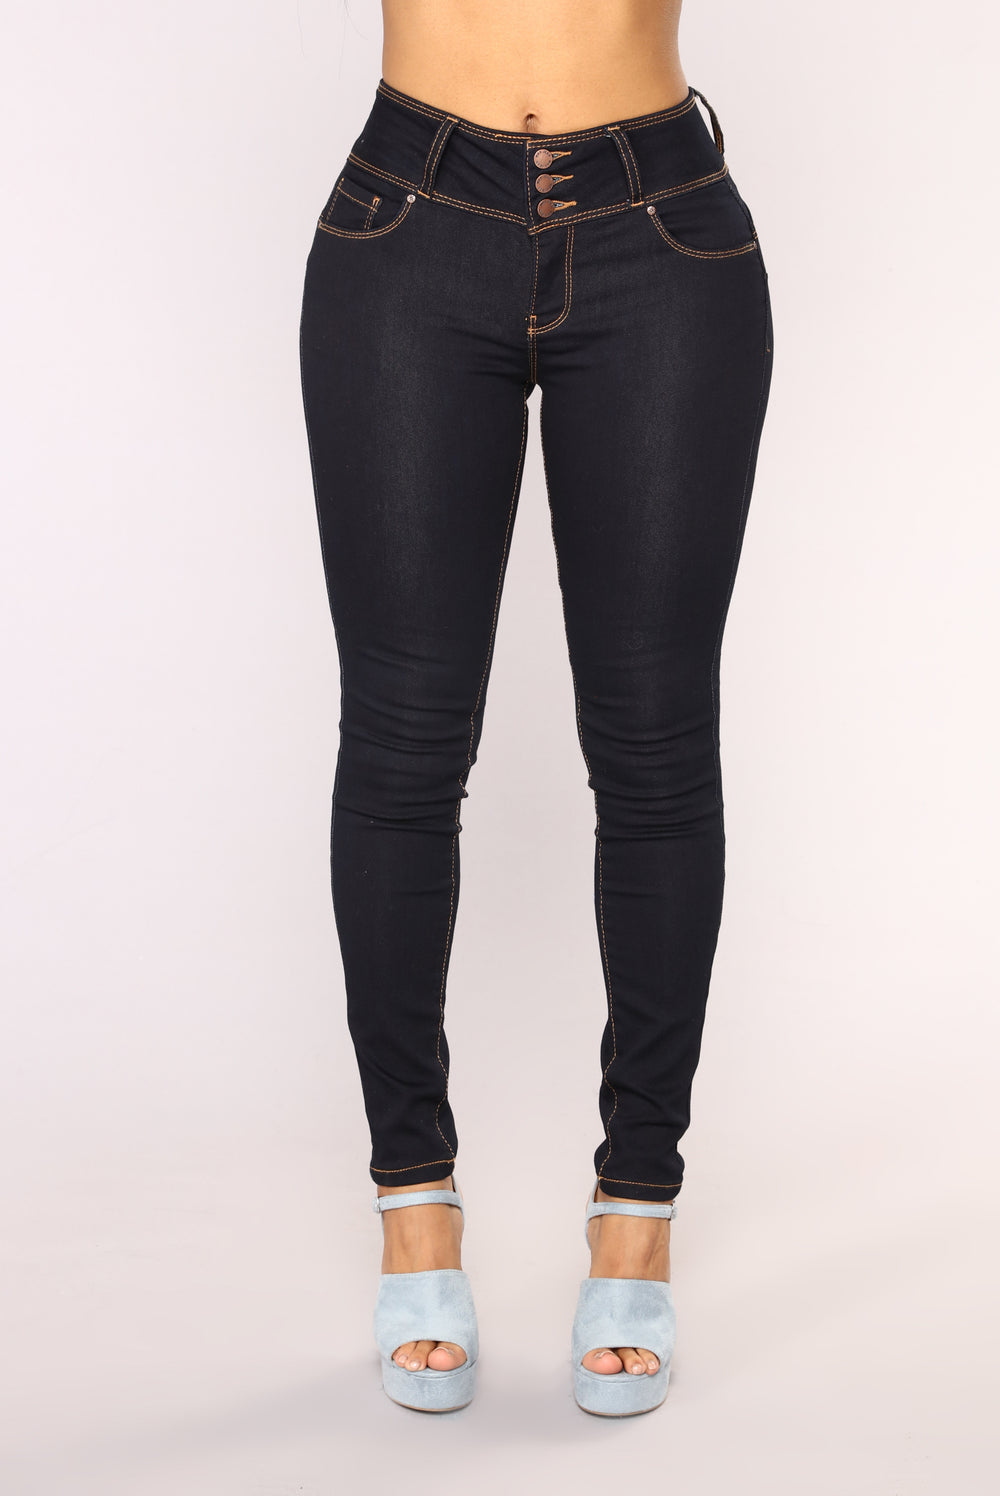 Round Of Applause Booty Shaped Jeans - Dark Denim